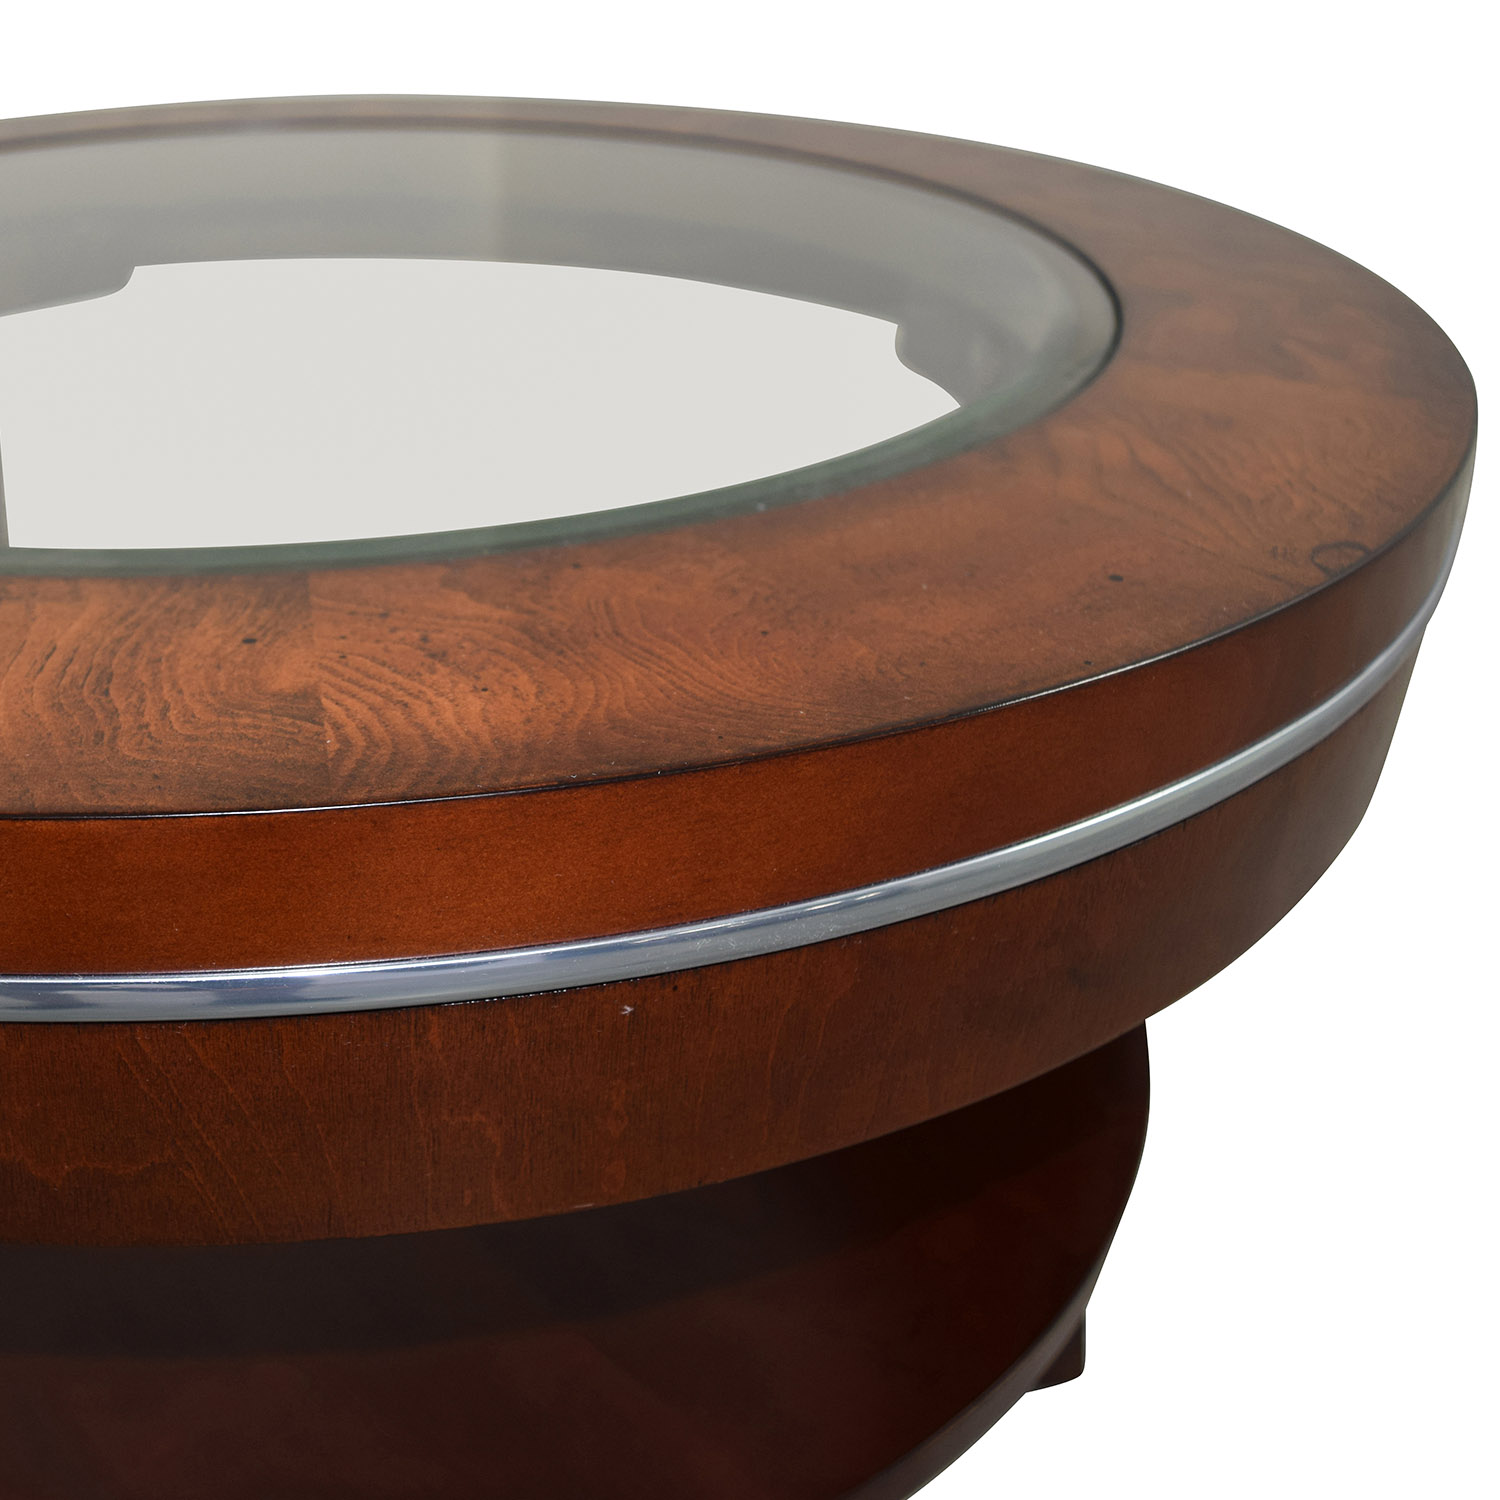 Raymour and Flanigan Raymour & Flanigan Round Glass and Wood Side Table dimensions